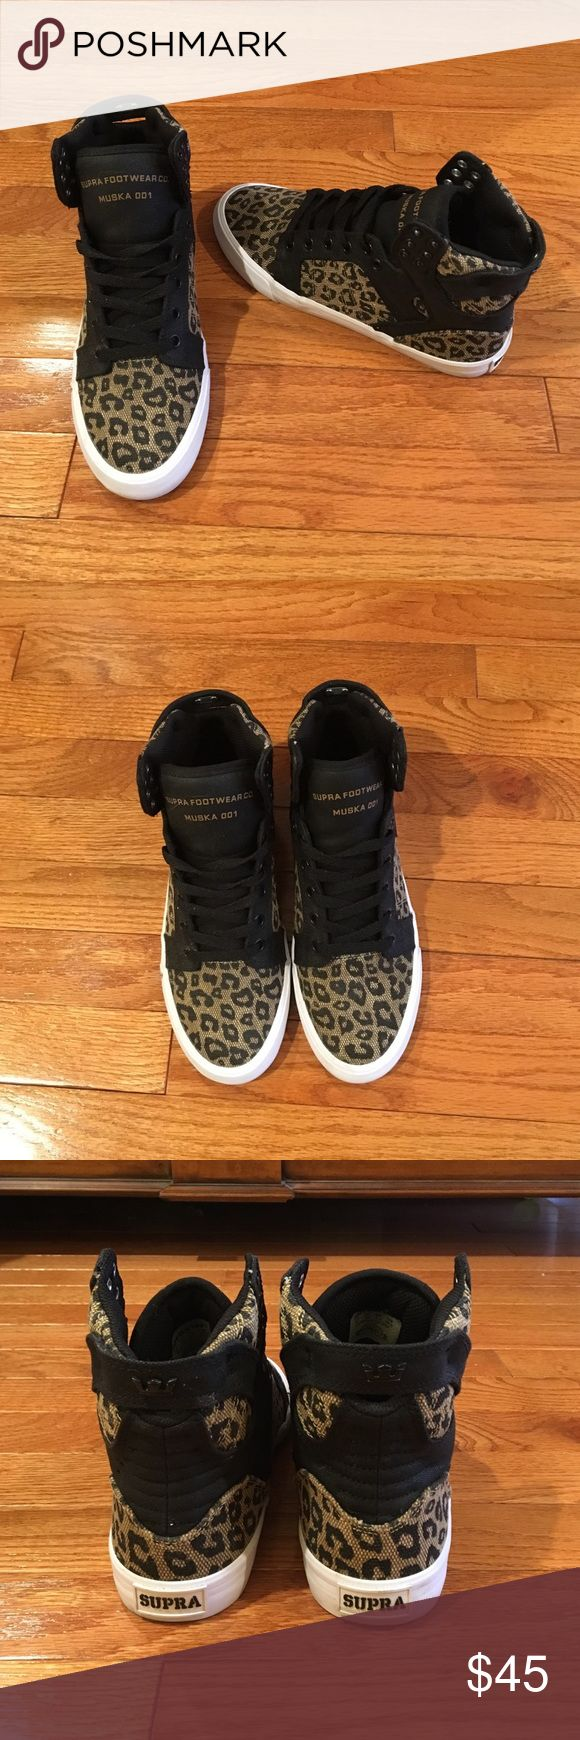 Supra Muska 001 Skytop Sneaker size 8 in Cheetah These limited edition Supra sneakers are in like-new condition. I've worn them around the house but have never worn them outside. Supra Shoes Sneakers